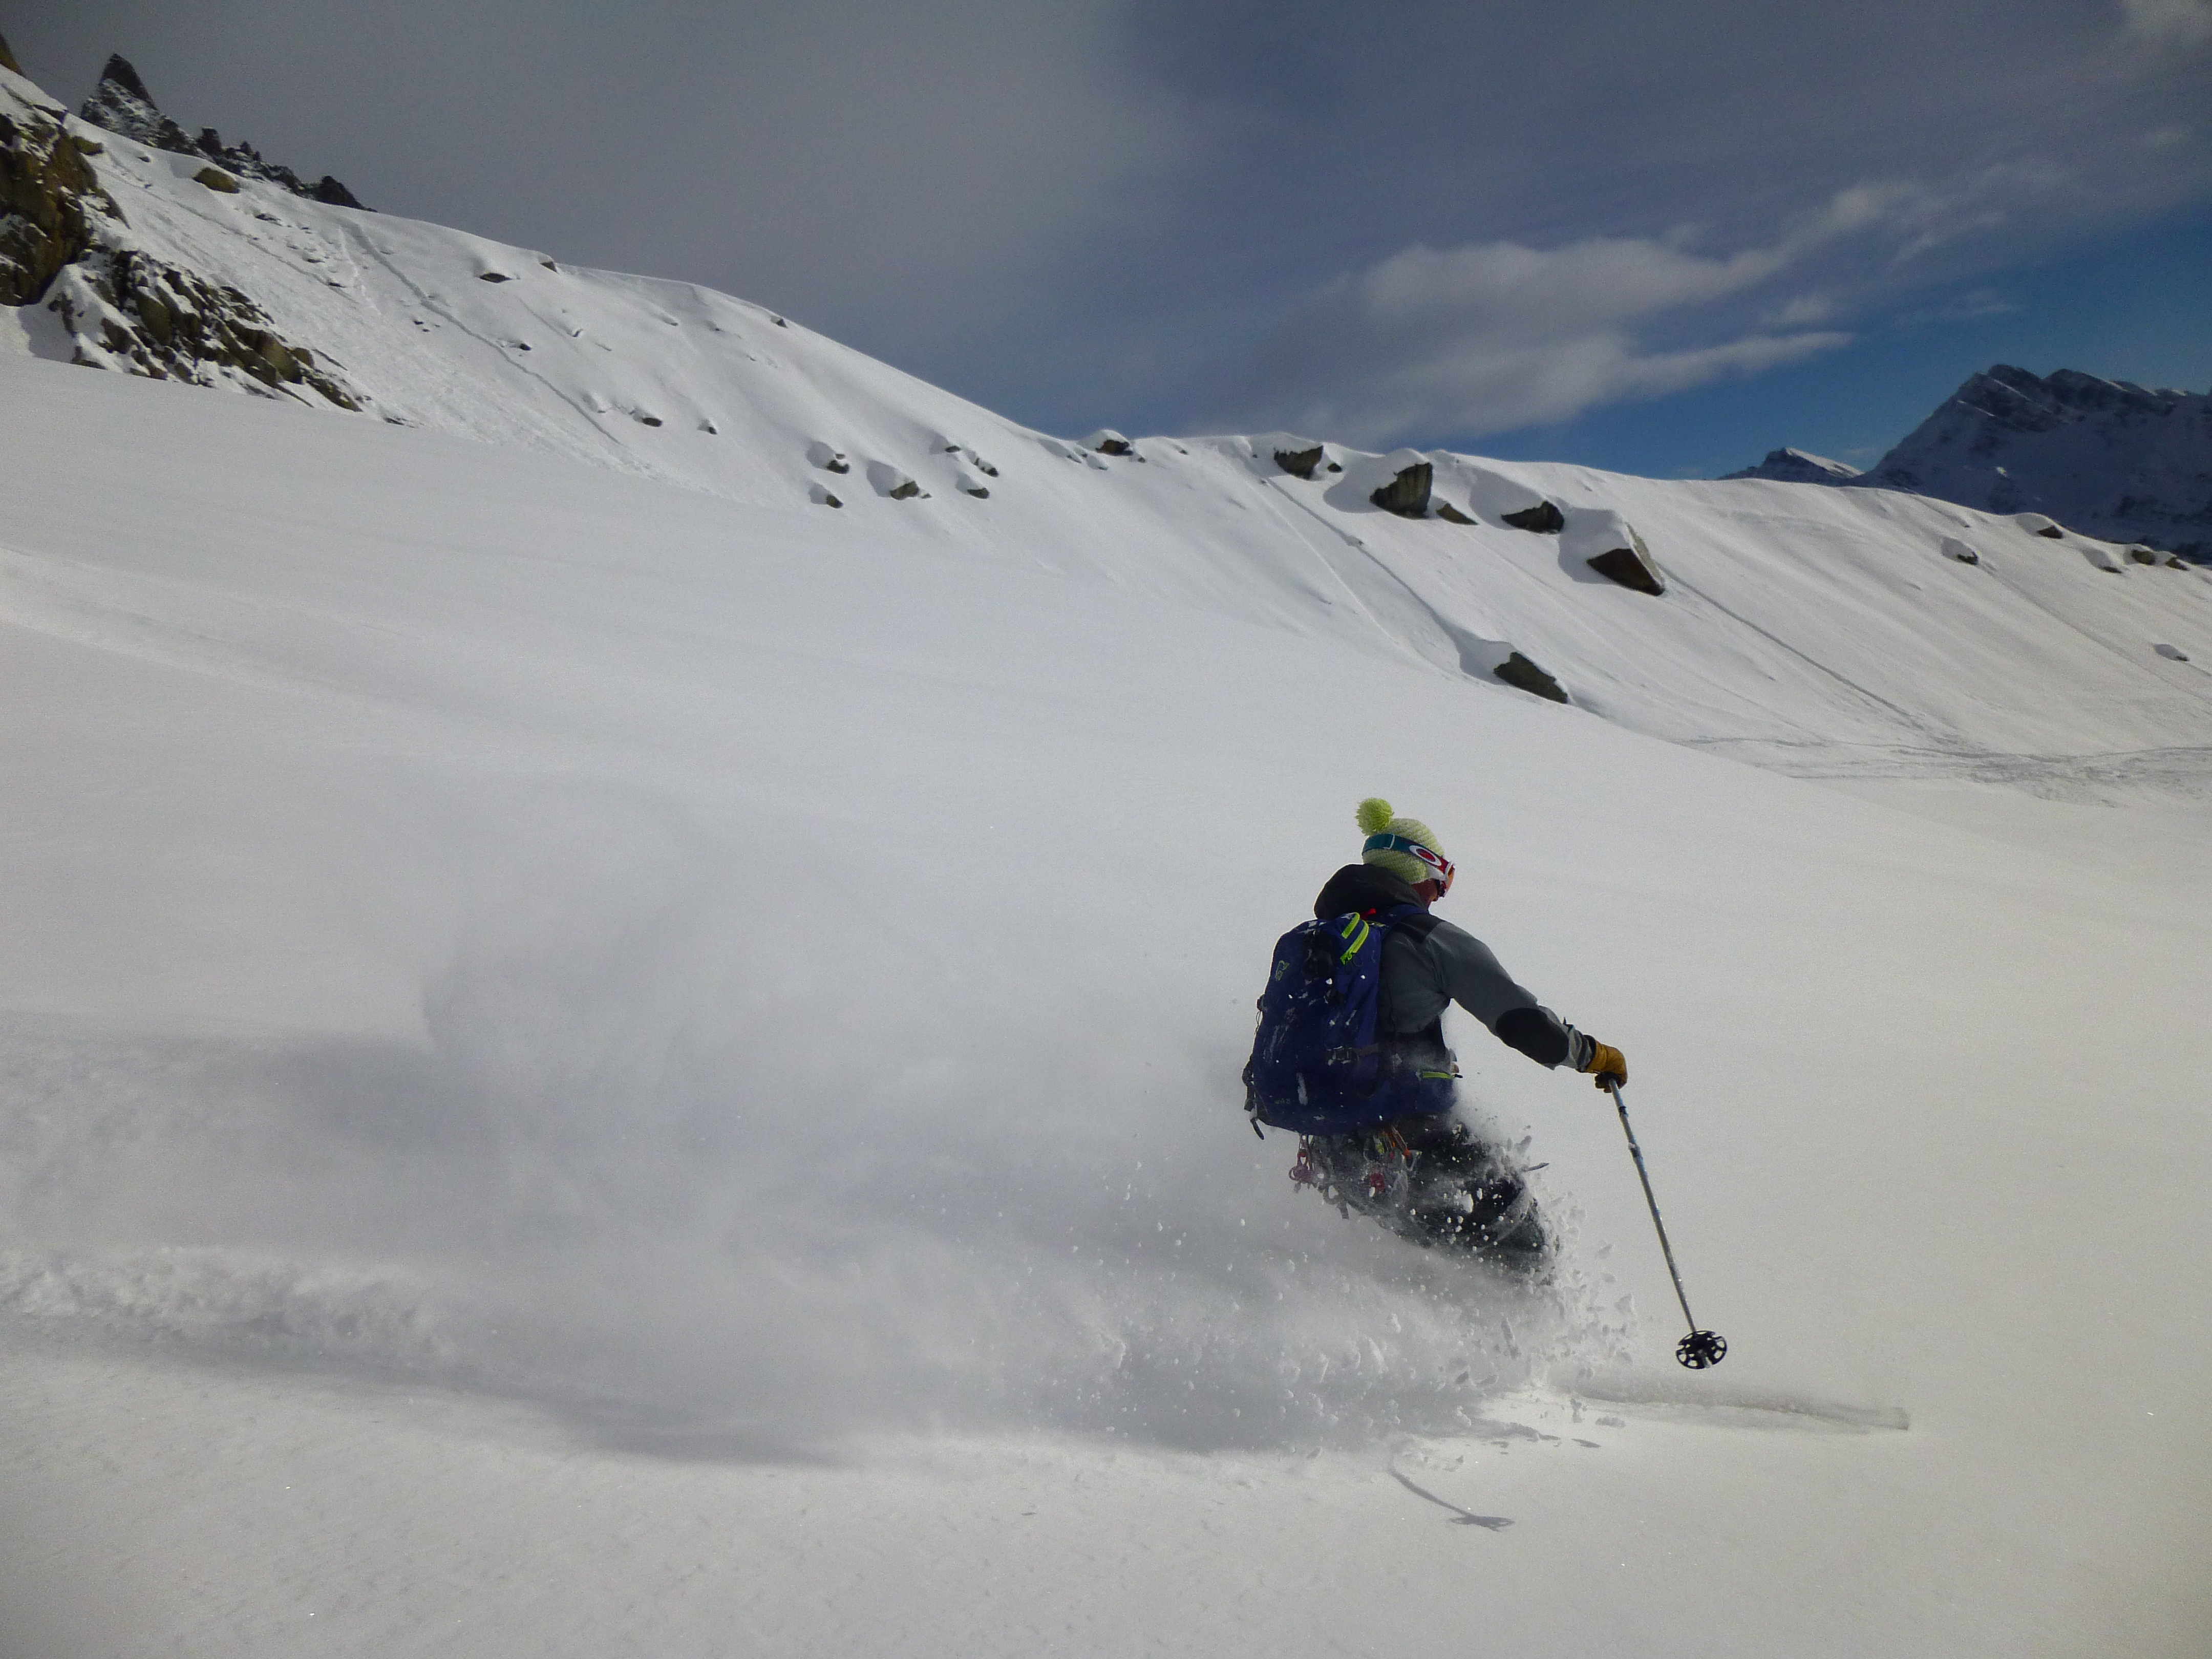 Helbronner, Courmayeur, Italy, Ski touring, freeride, off-piste, backcountry, Alpine Energy Guiding, mountaineering & ski adventures, Andrew Lanham Mountain Guide, Chamonix, Aosta Valley, Swiss, lyngen alps